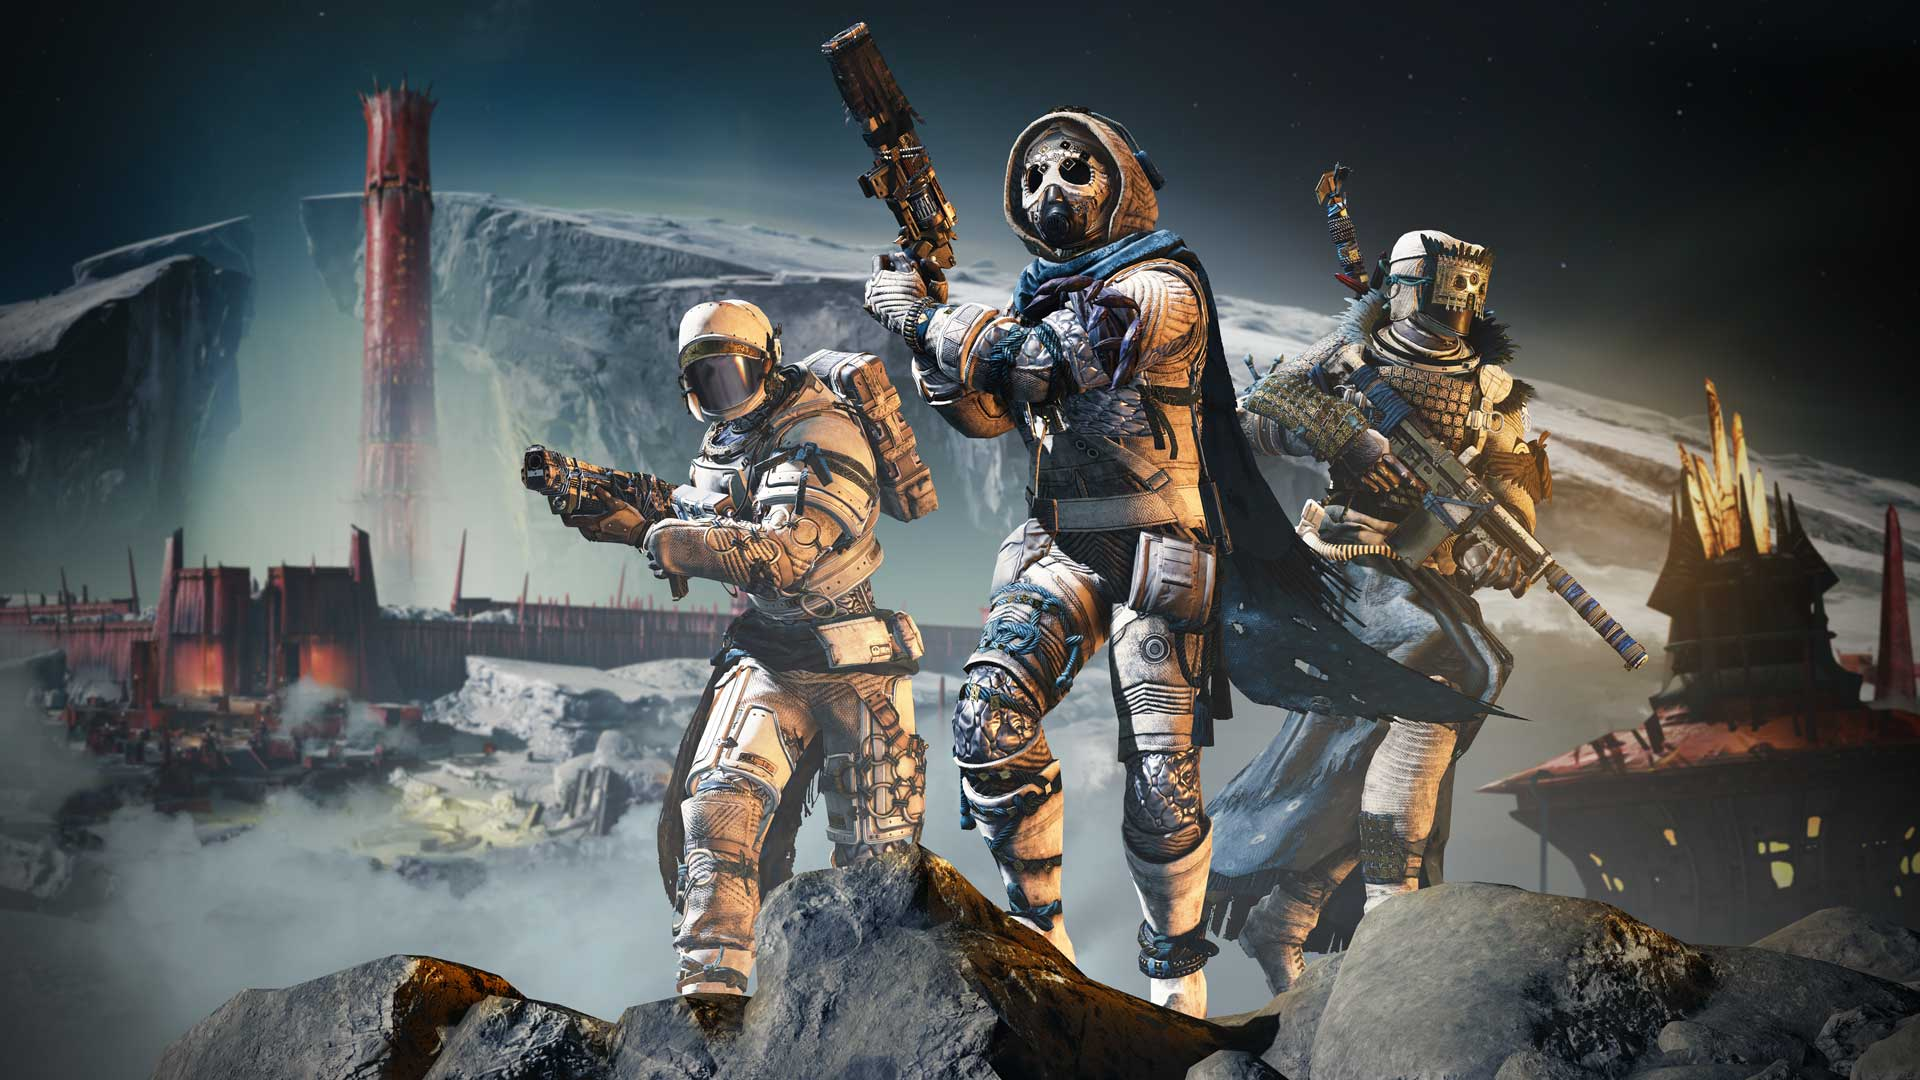 destiny 2 shadowkeep, download and install size